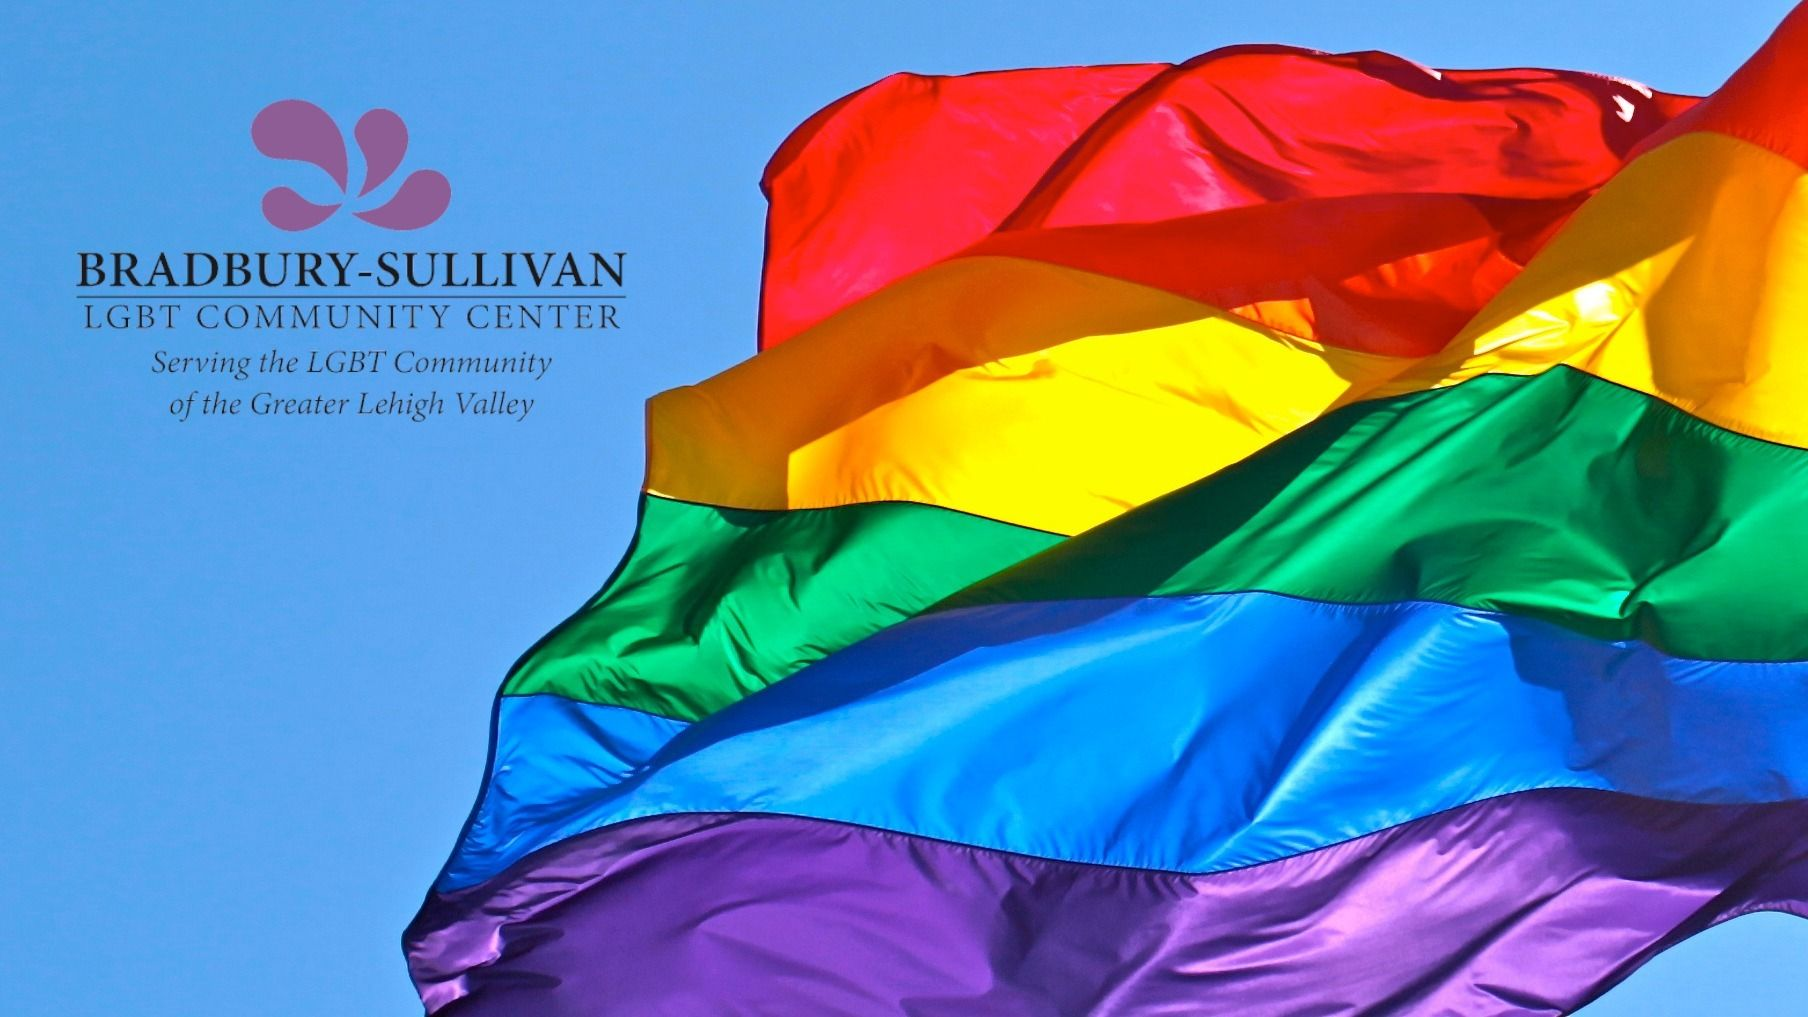 Bradbury-Sullivan LGBT Community Center